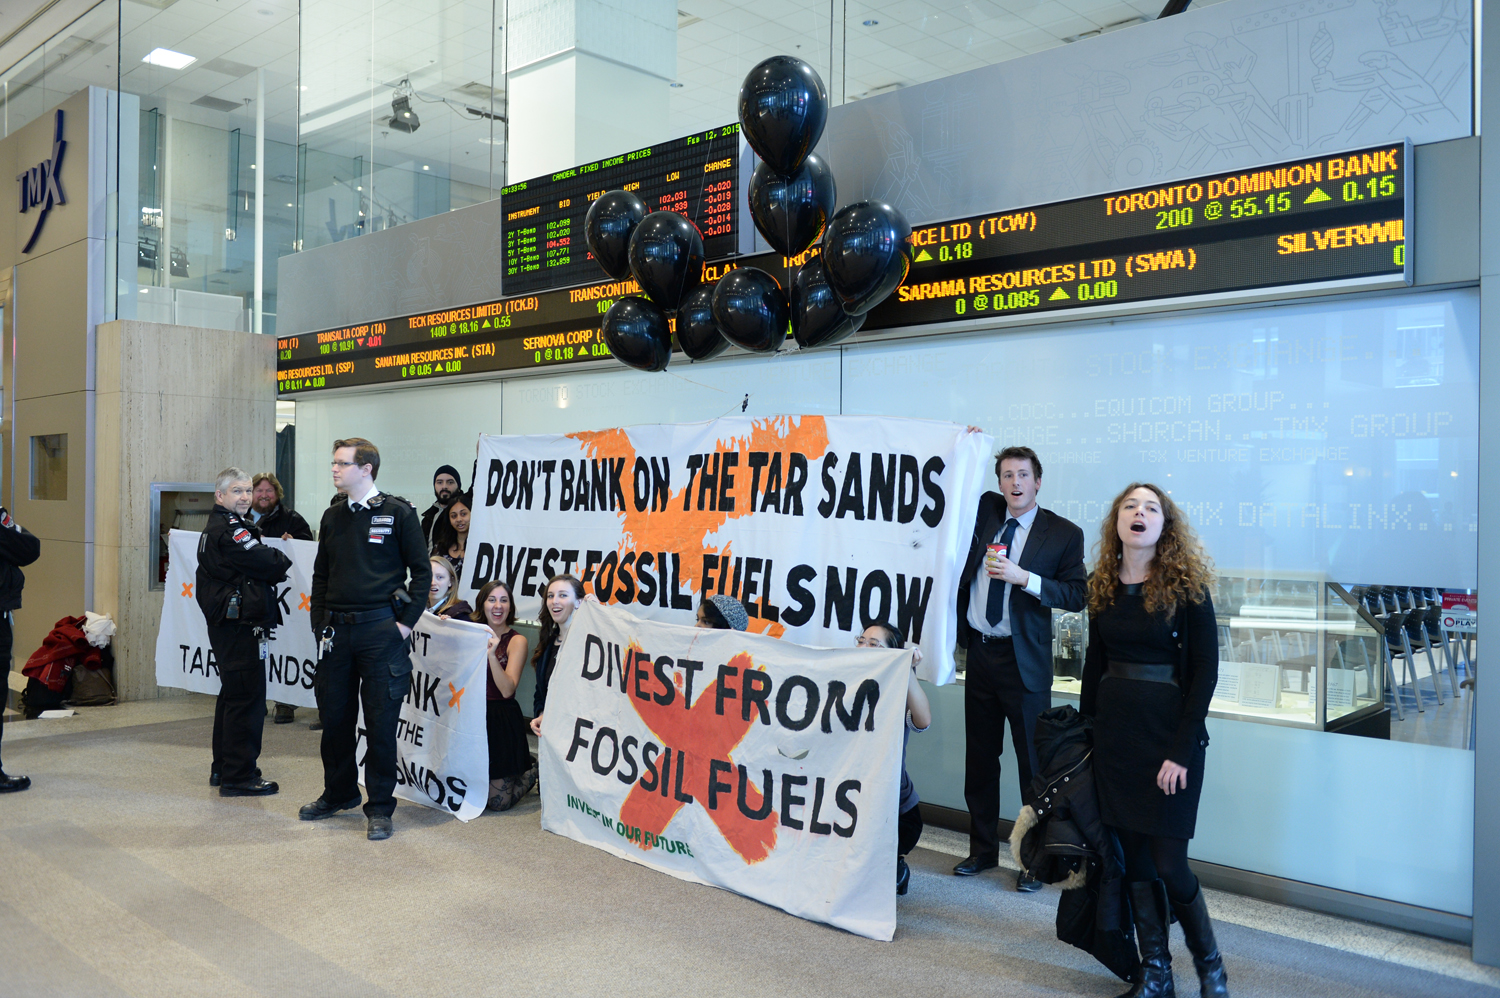 Climate activists disrupt the Toronto Stock Exchange (TSX)